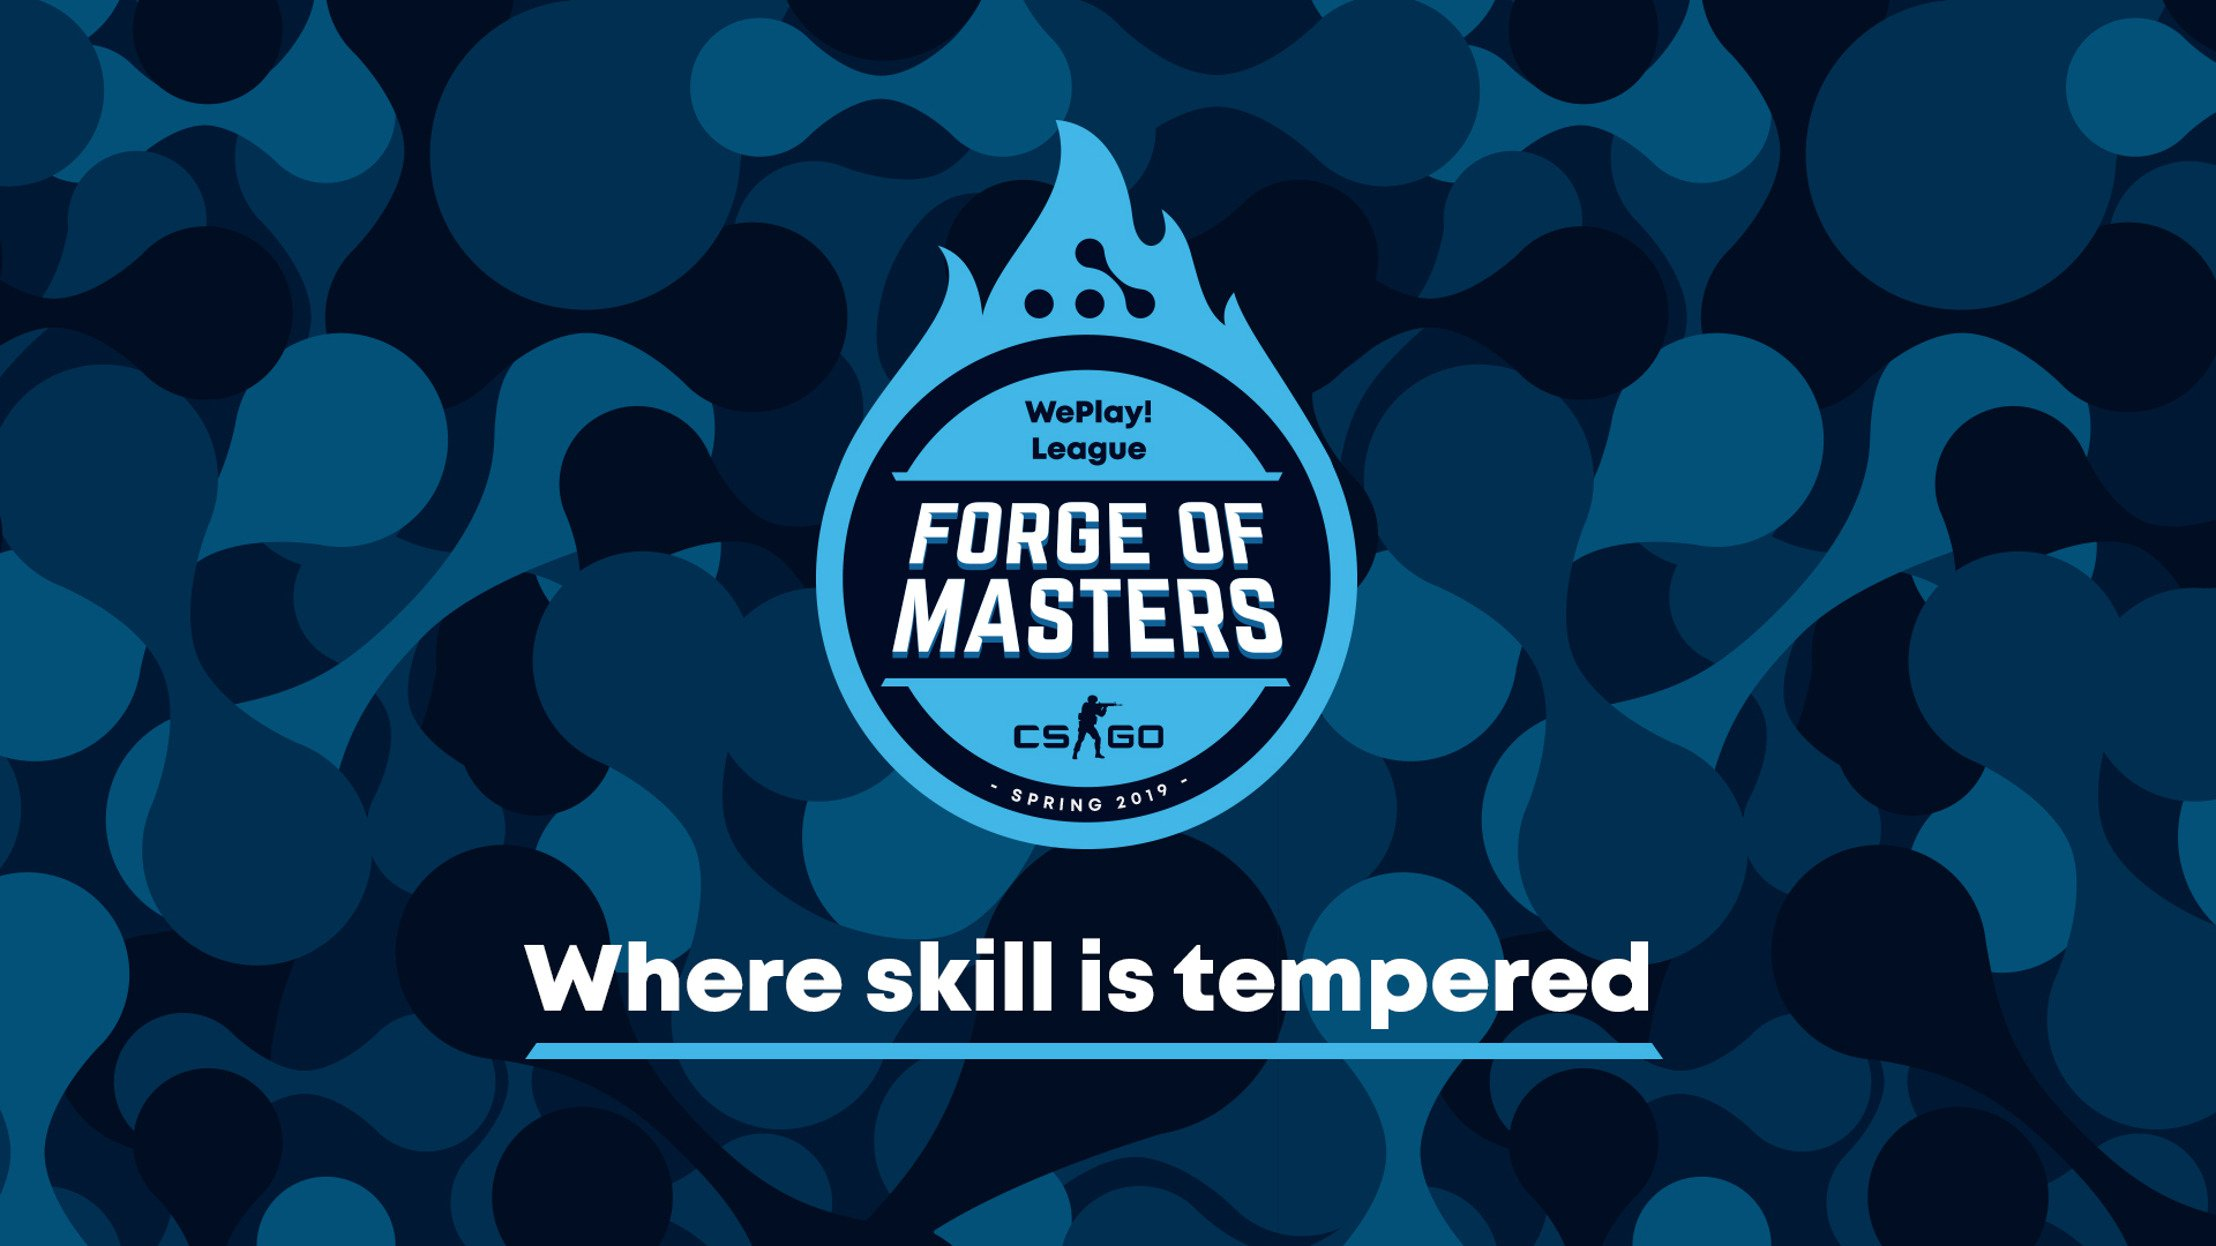 Forge of Masters. WePlay! League CS:GO announcement